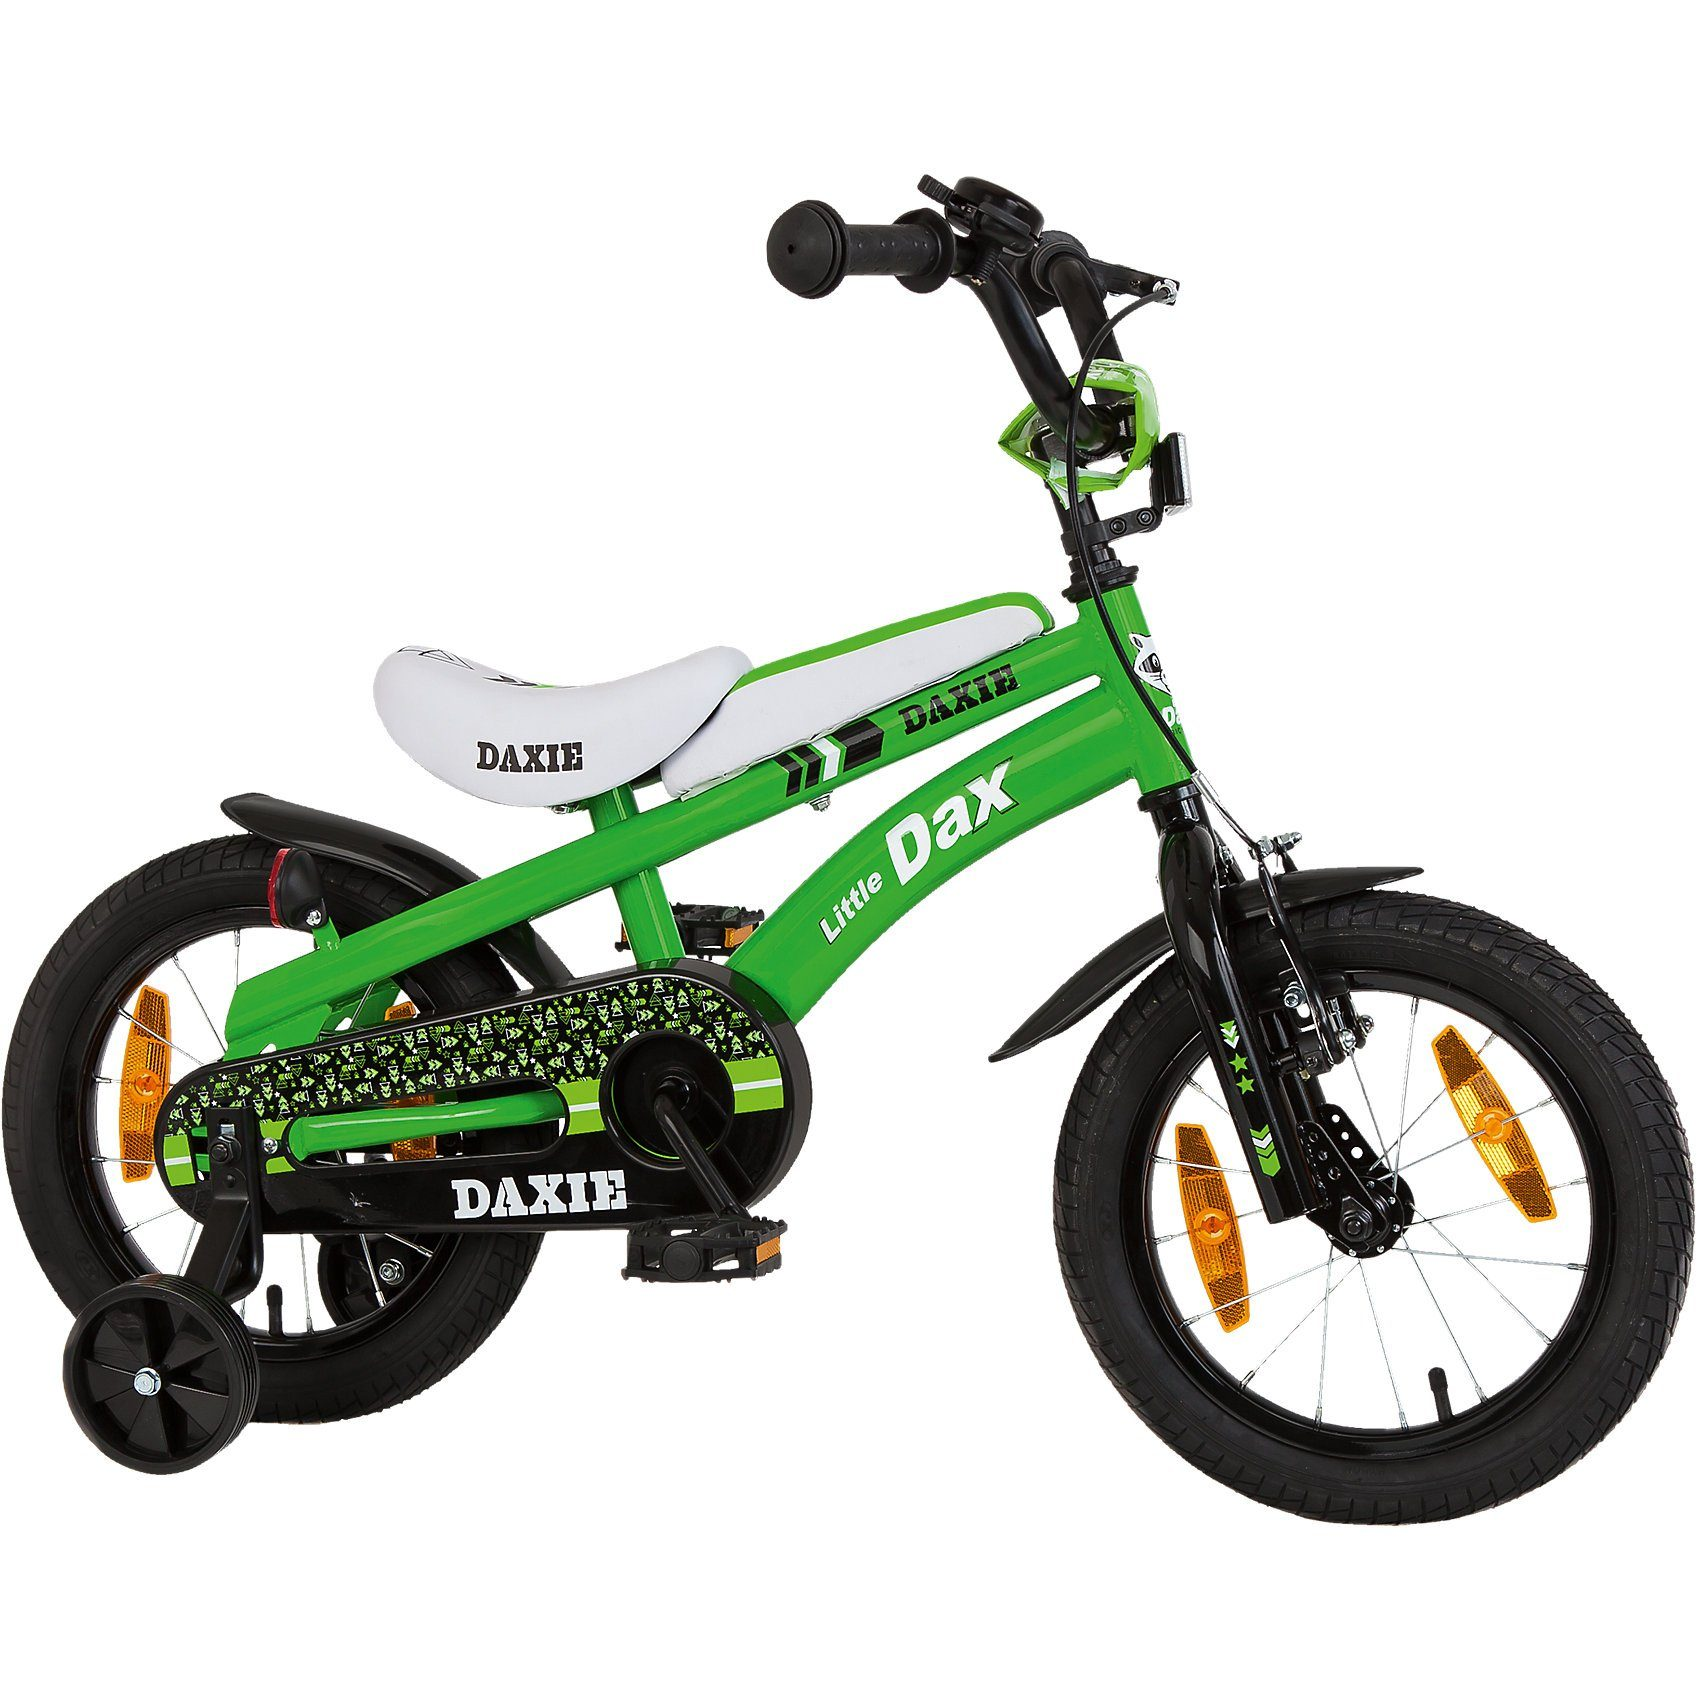 Bachtenkirch Kinderfahrrad Little-Dax Daxie, 14 Zoll